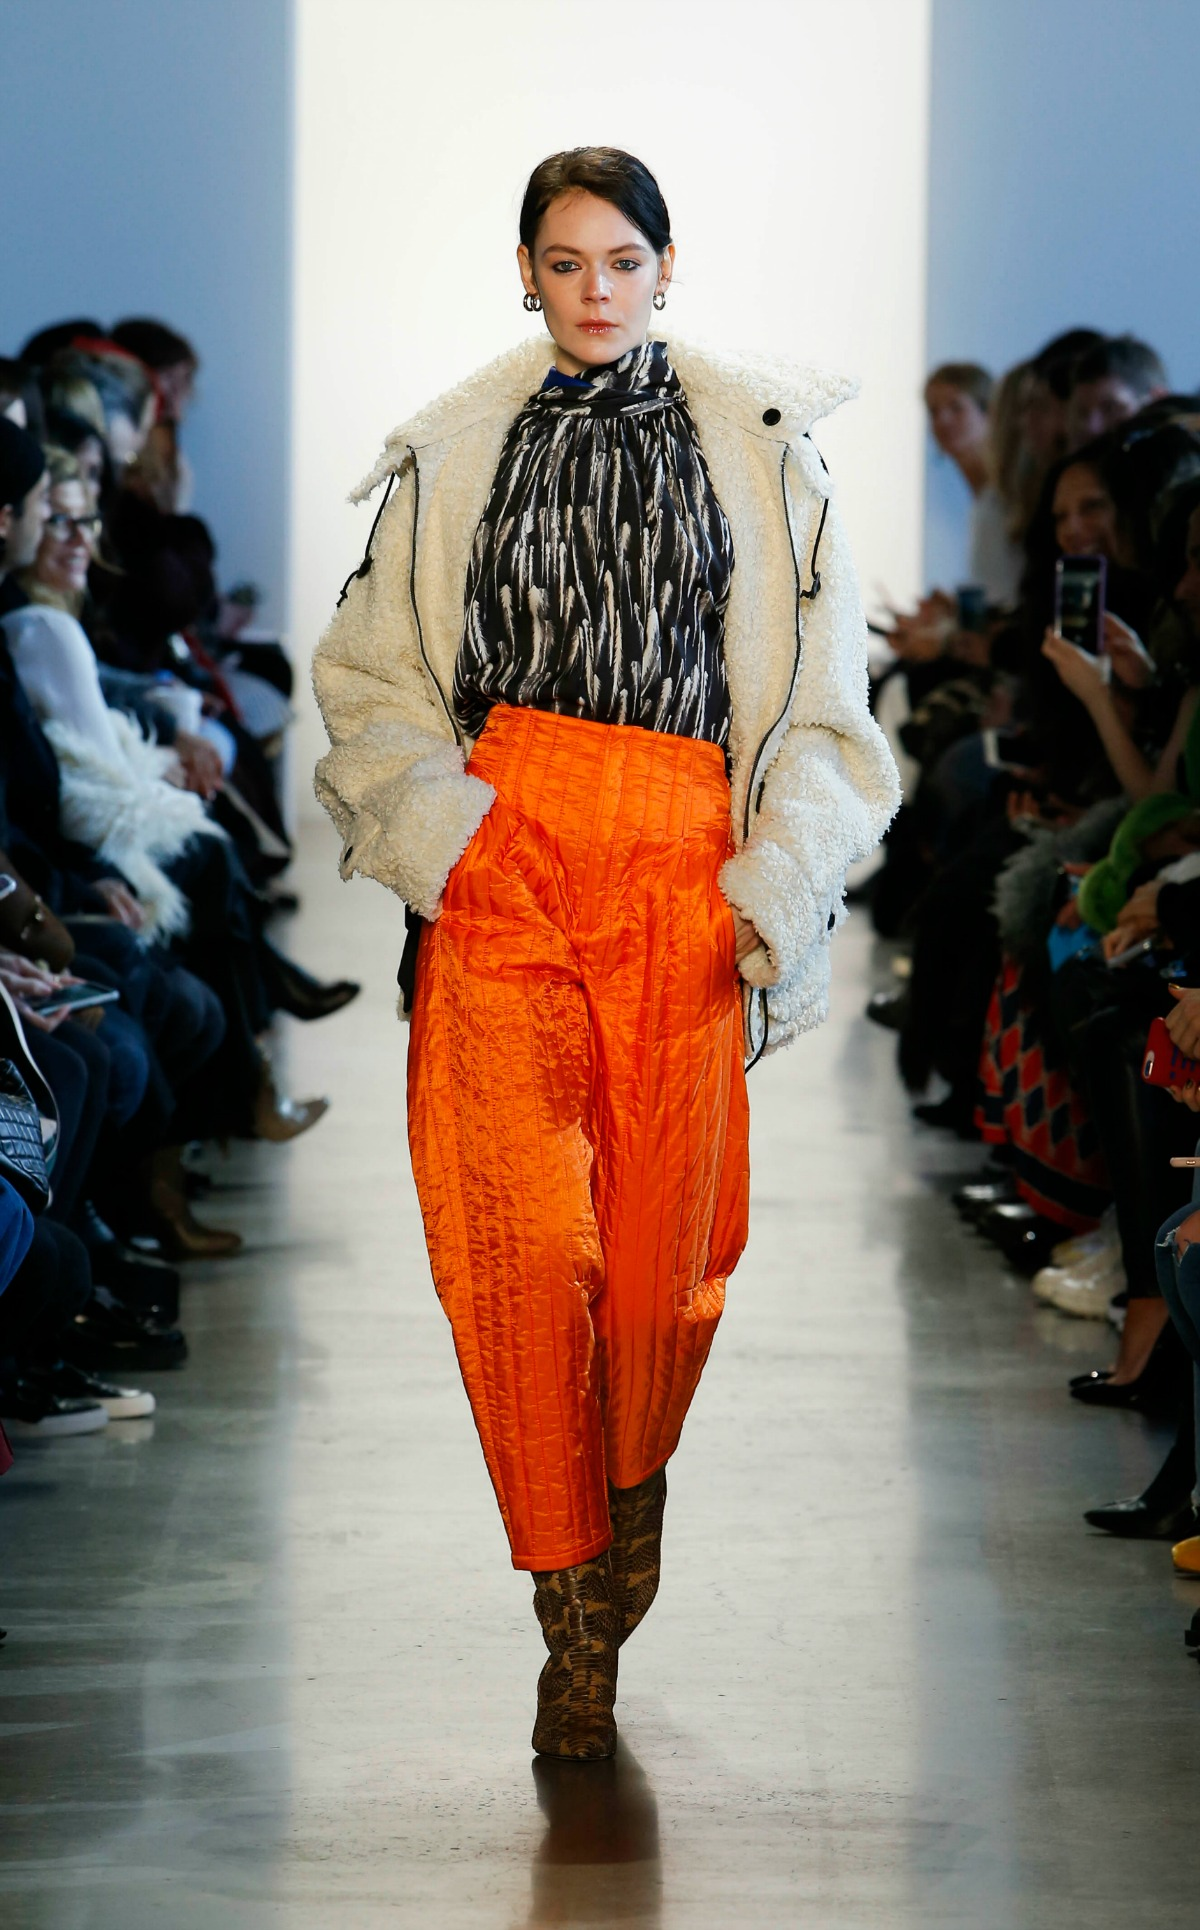 COLOVOS Fall 2018 Runway at NYFW I Faux Fur Jacket and Silk Top #NYFW #WinterFashion